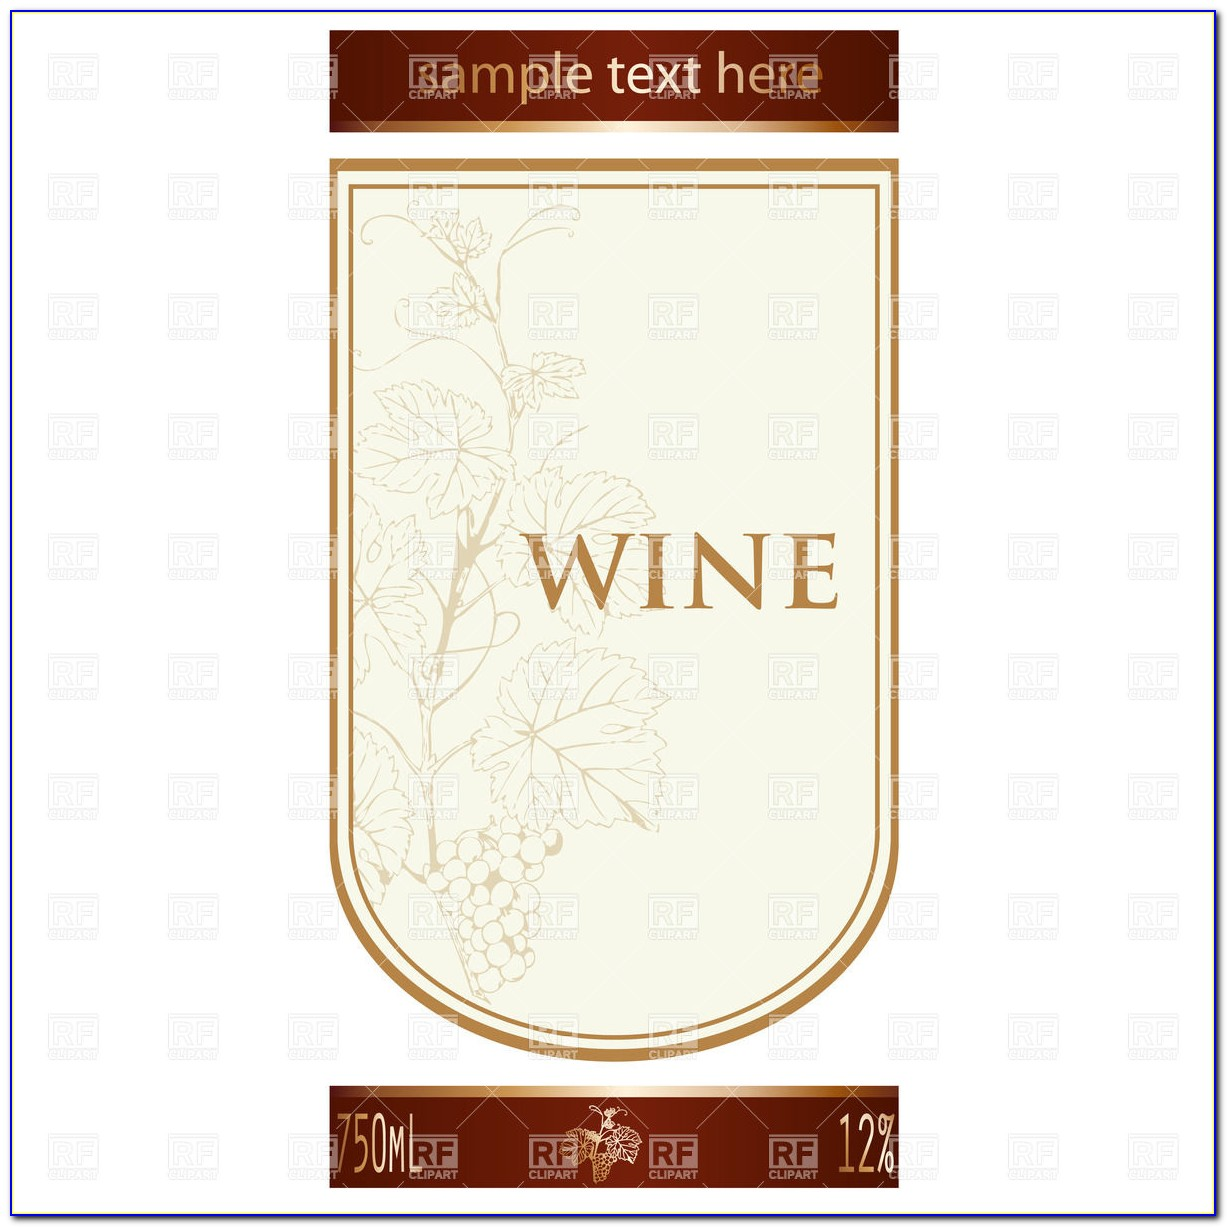 Free Wedding Wine Bottle Label Templates